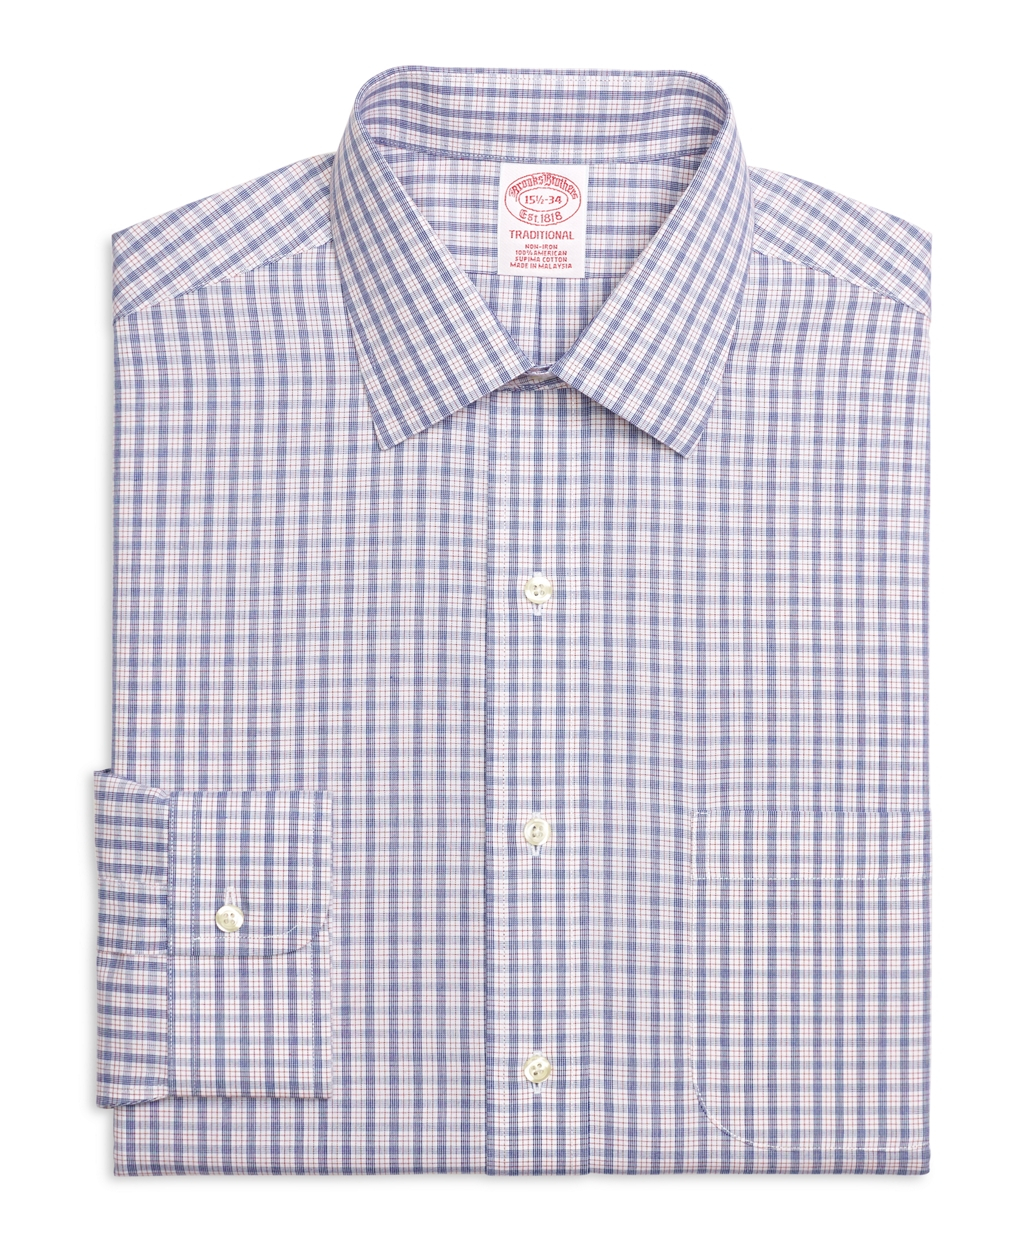 Brooks brothers non iron madison fit hairline check dress Brooks brothers shirt size guide